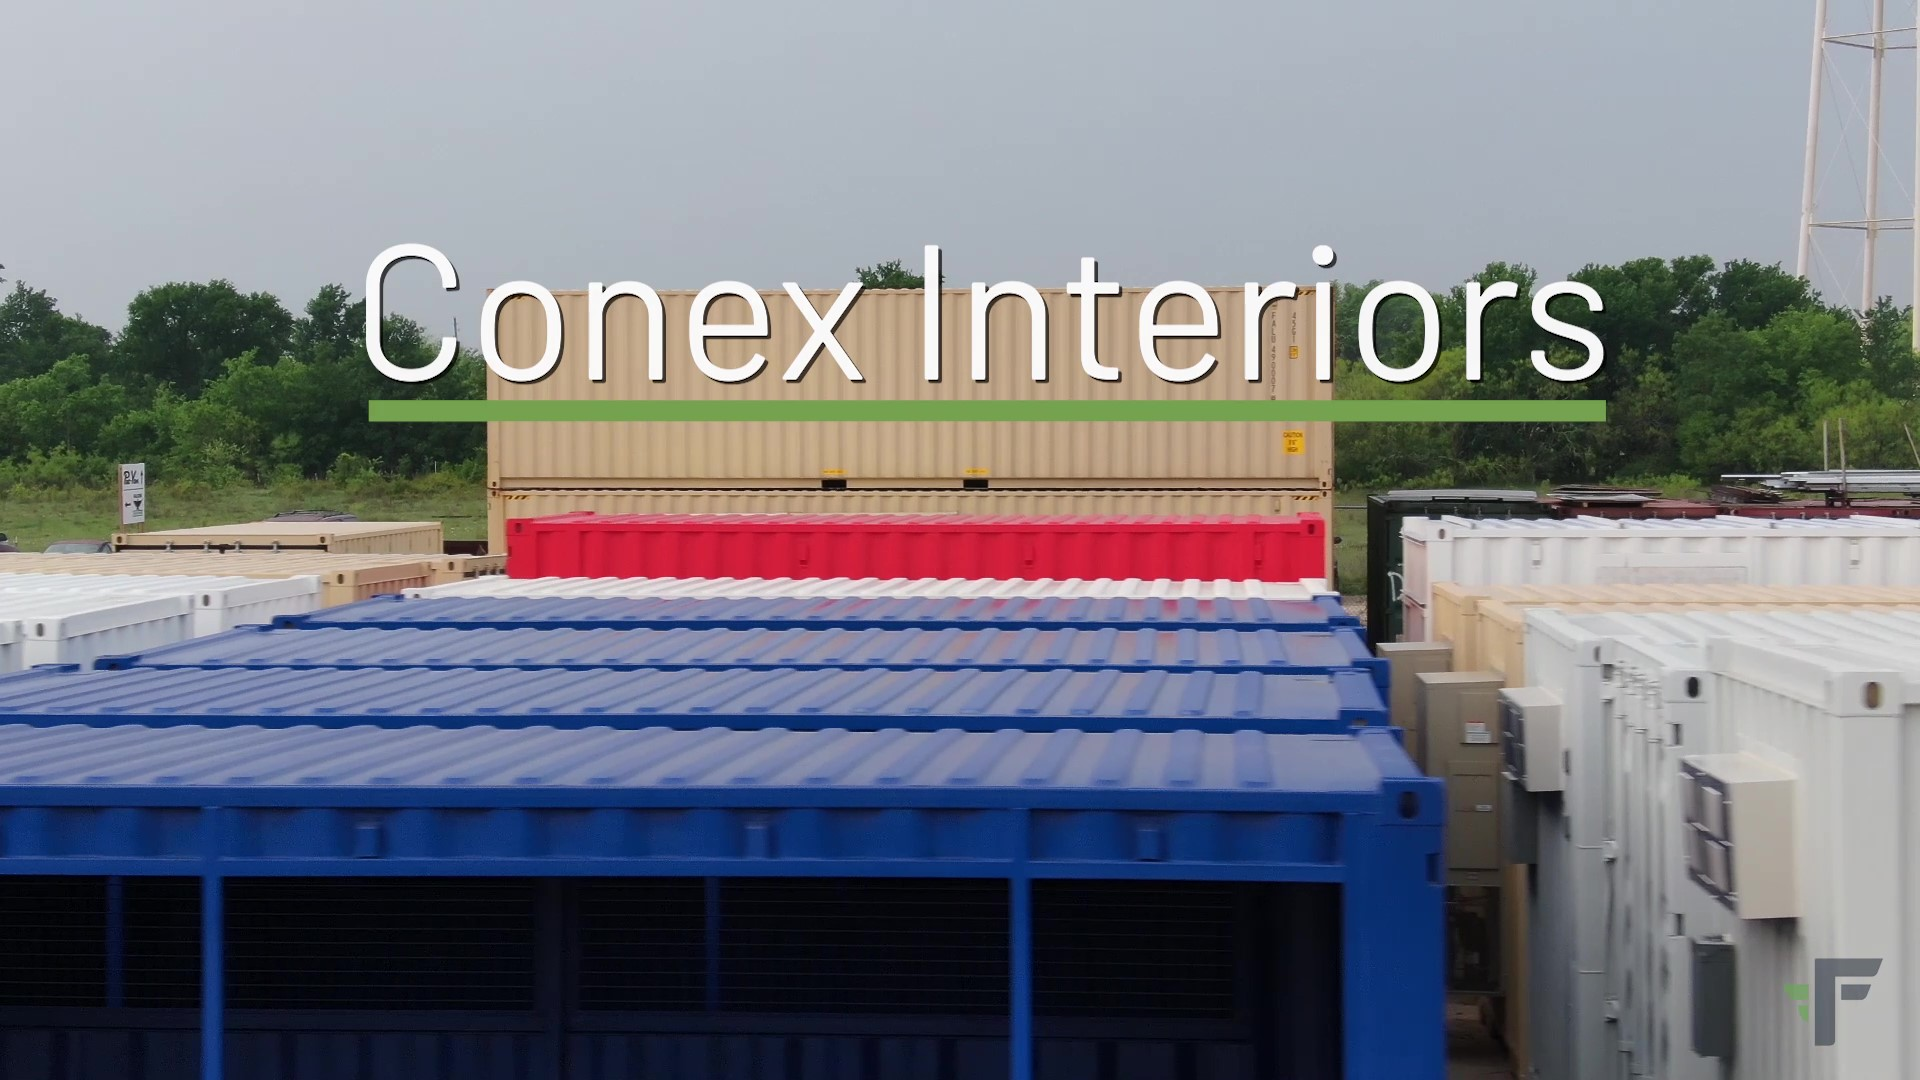 conex-interiors-video-thumbnail